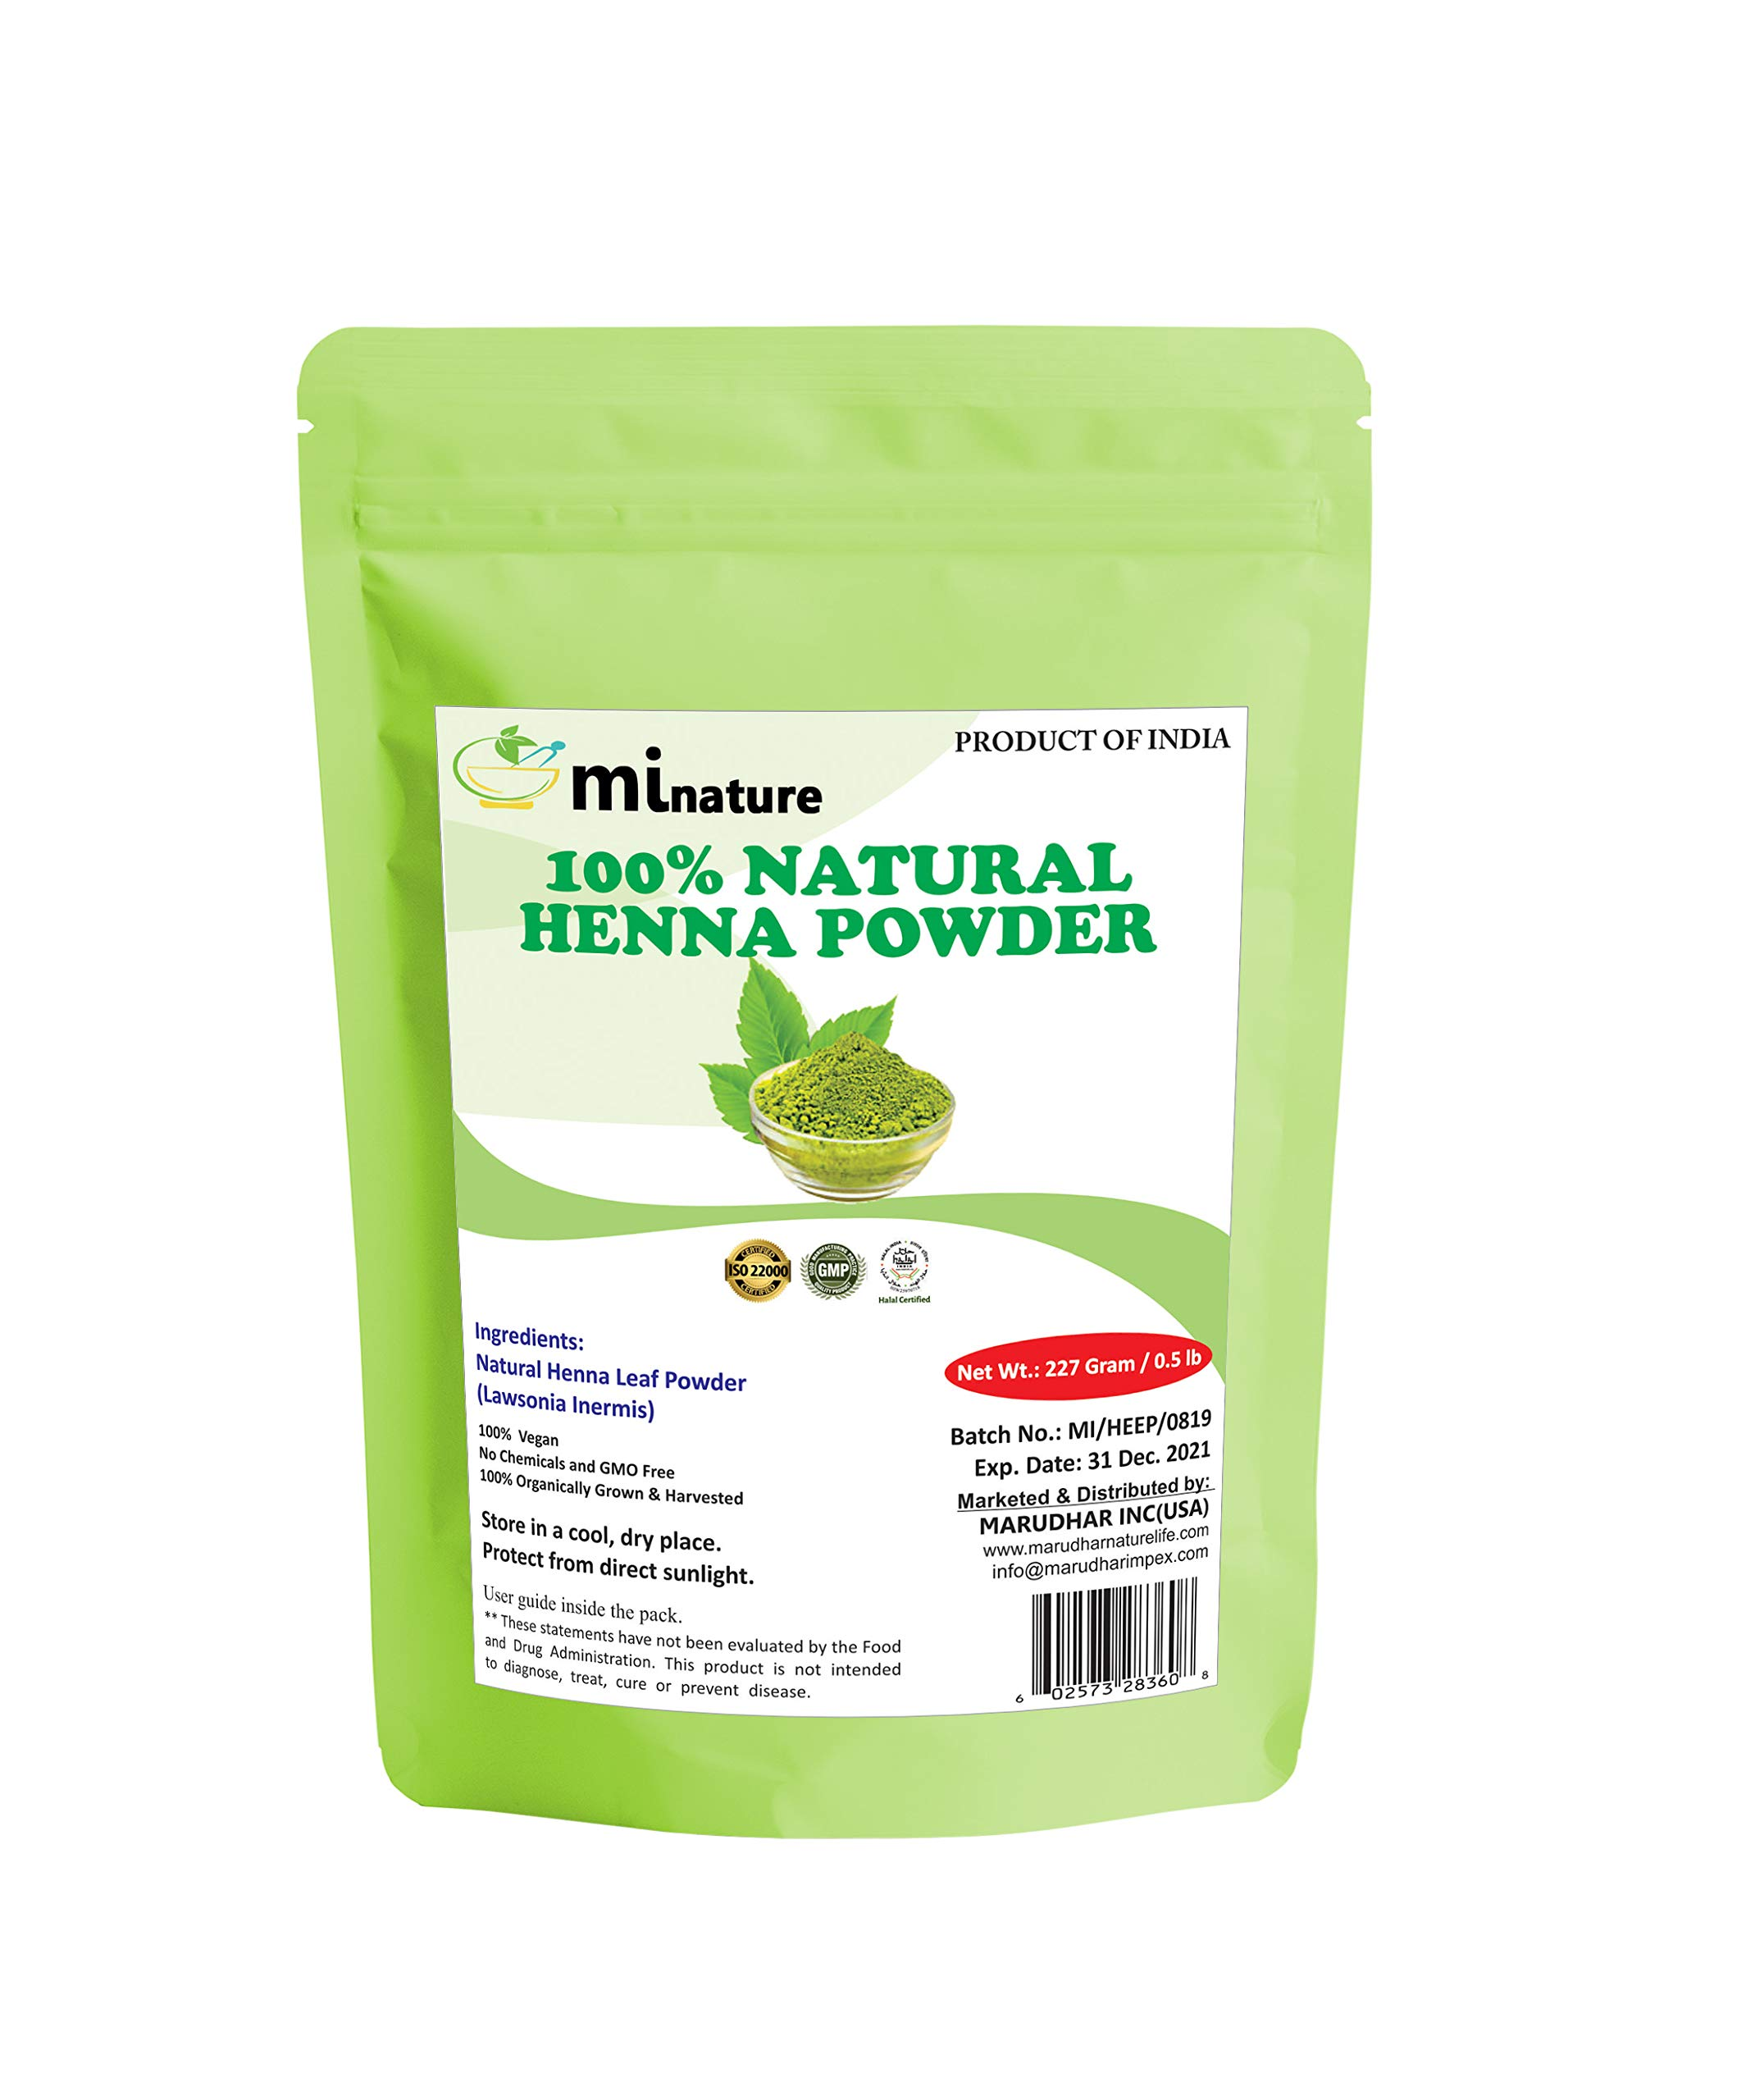 mi nature Henna Powder (LAWSONIA INERMIS)/ 100% Pure, Natural and Organic From Rajasthan, India (227g / (1/2 lb) For Hair Dye/Color, by mi nature